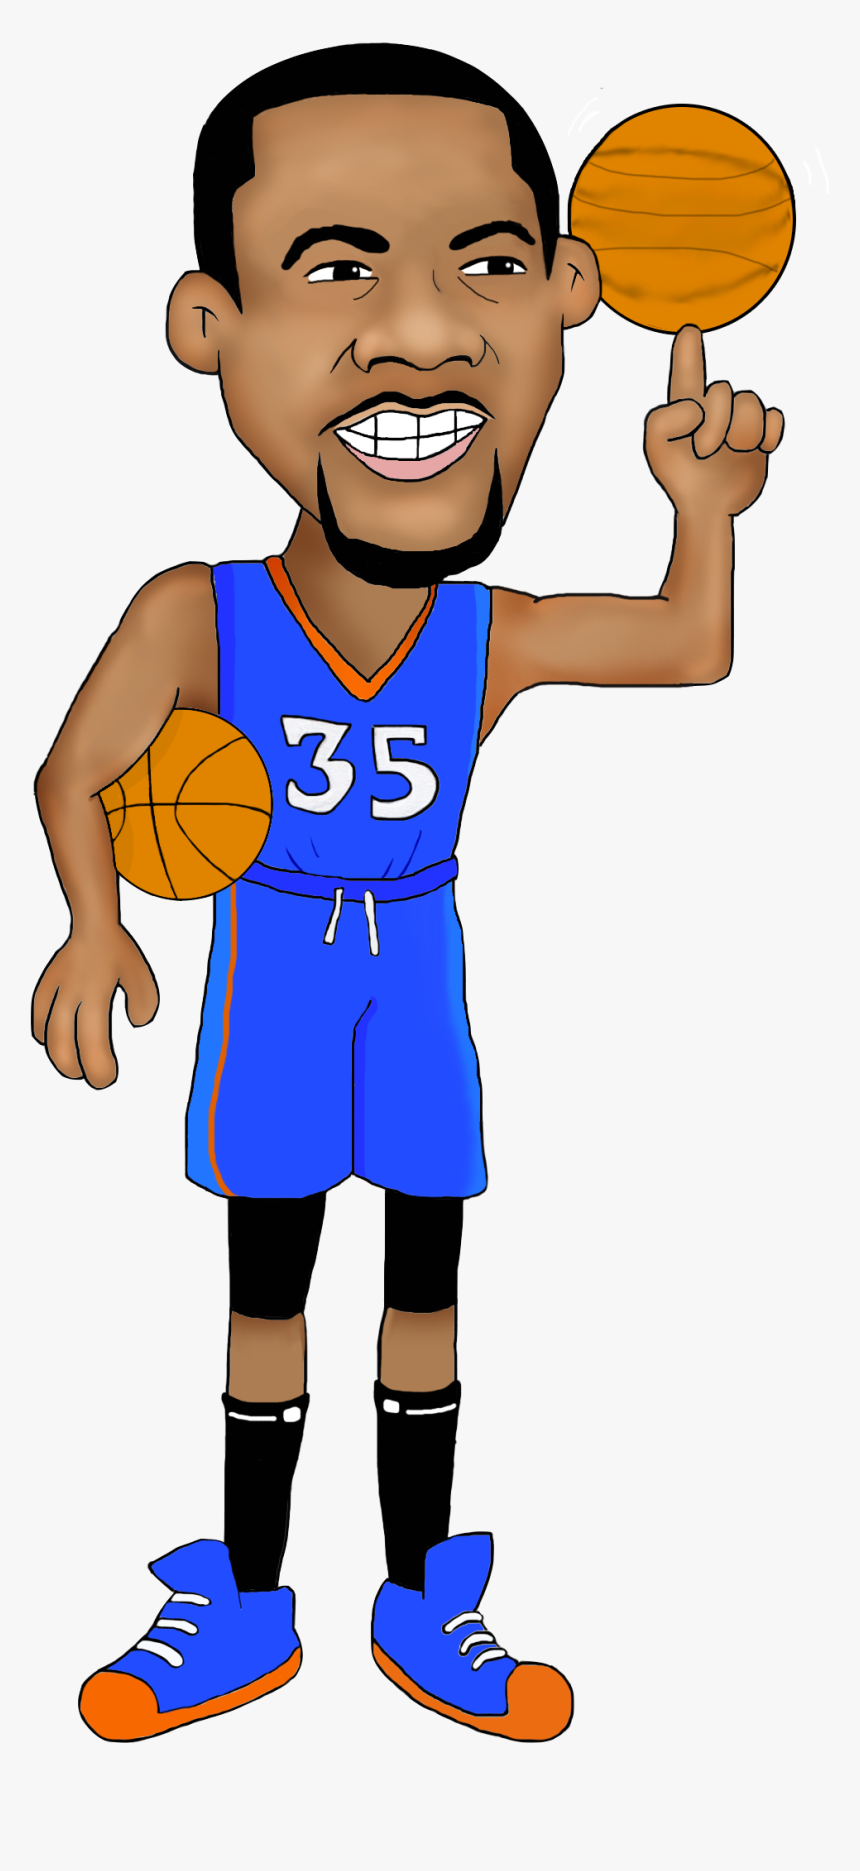 Golden State Warriors Player Cartoon - Kevin Durant Cartoon Png, Transparent Png, Free Download